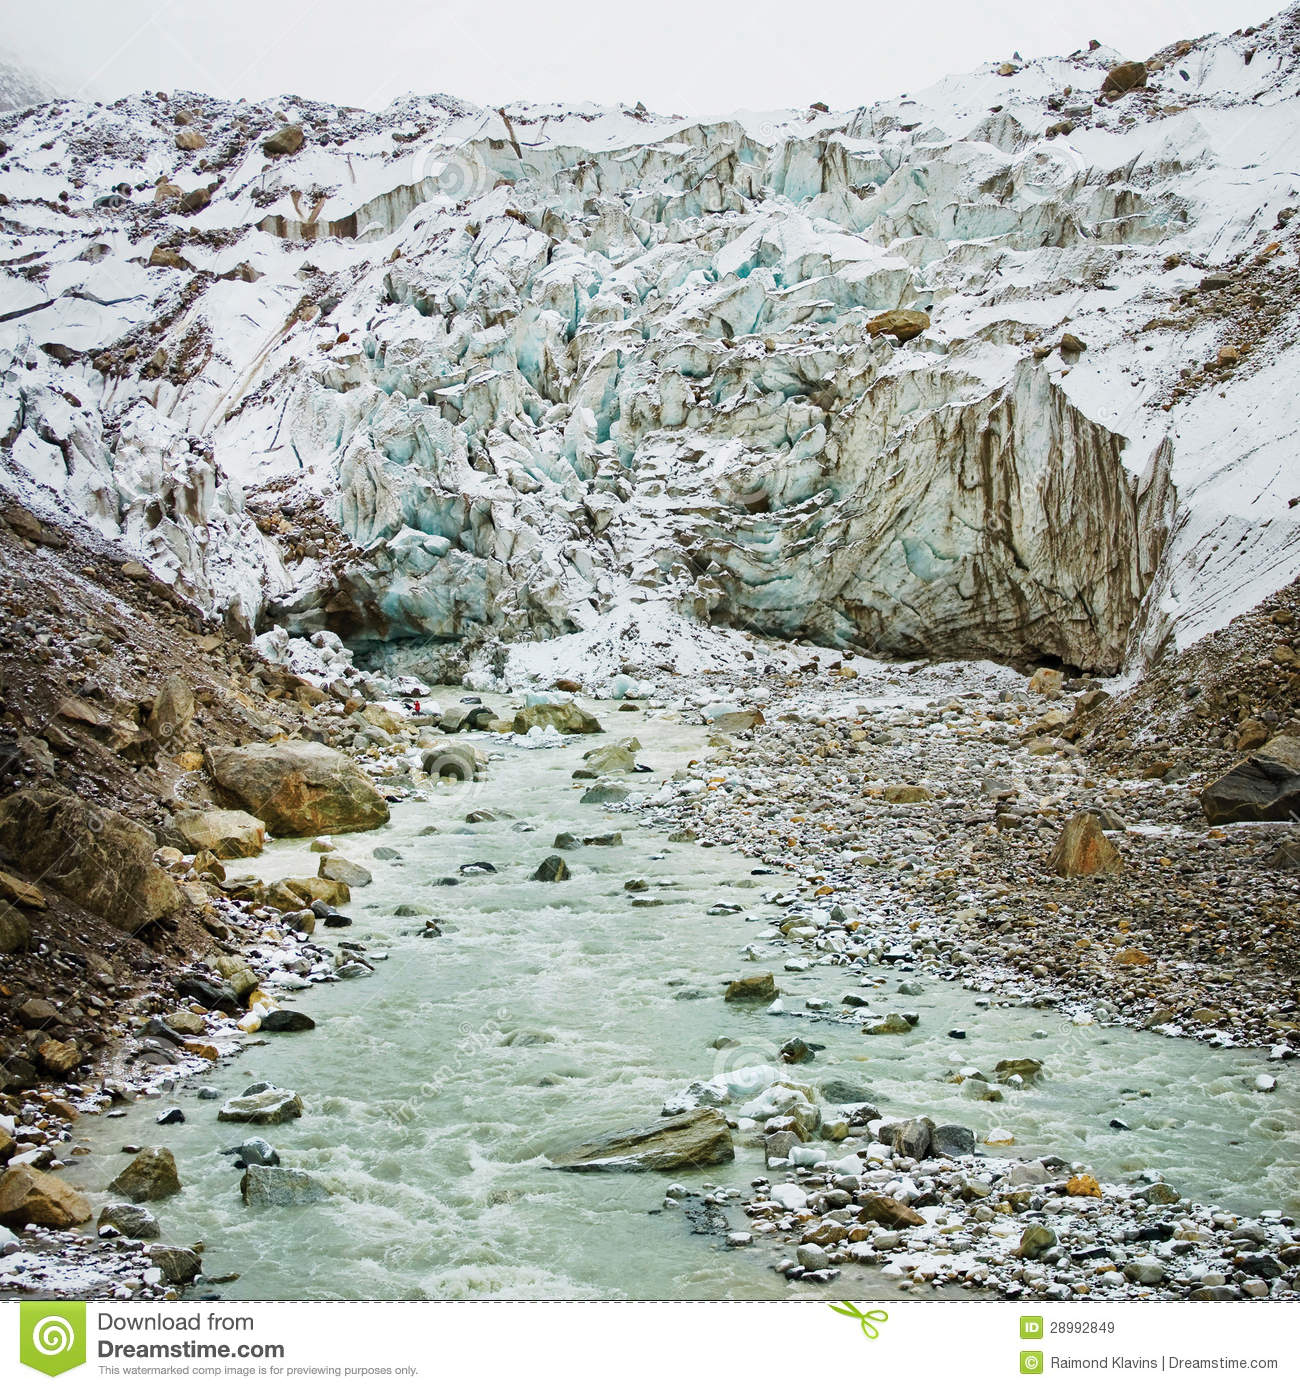 Glacier and river in mountain